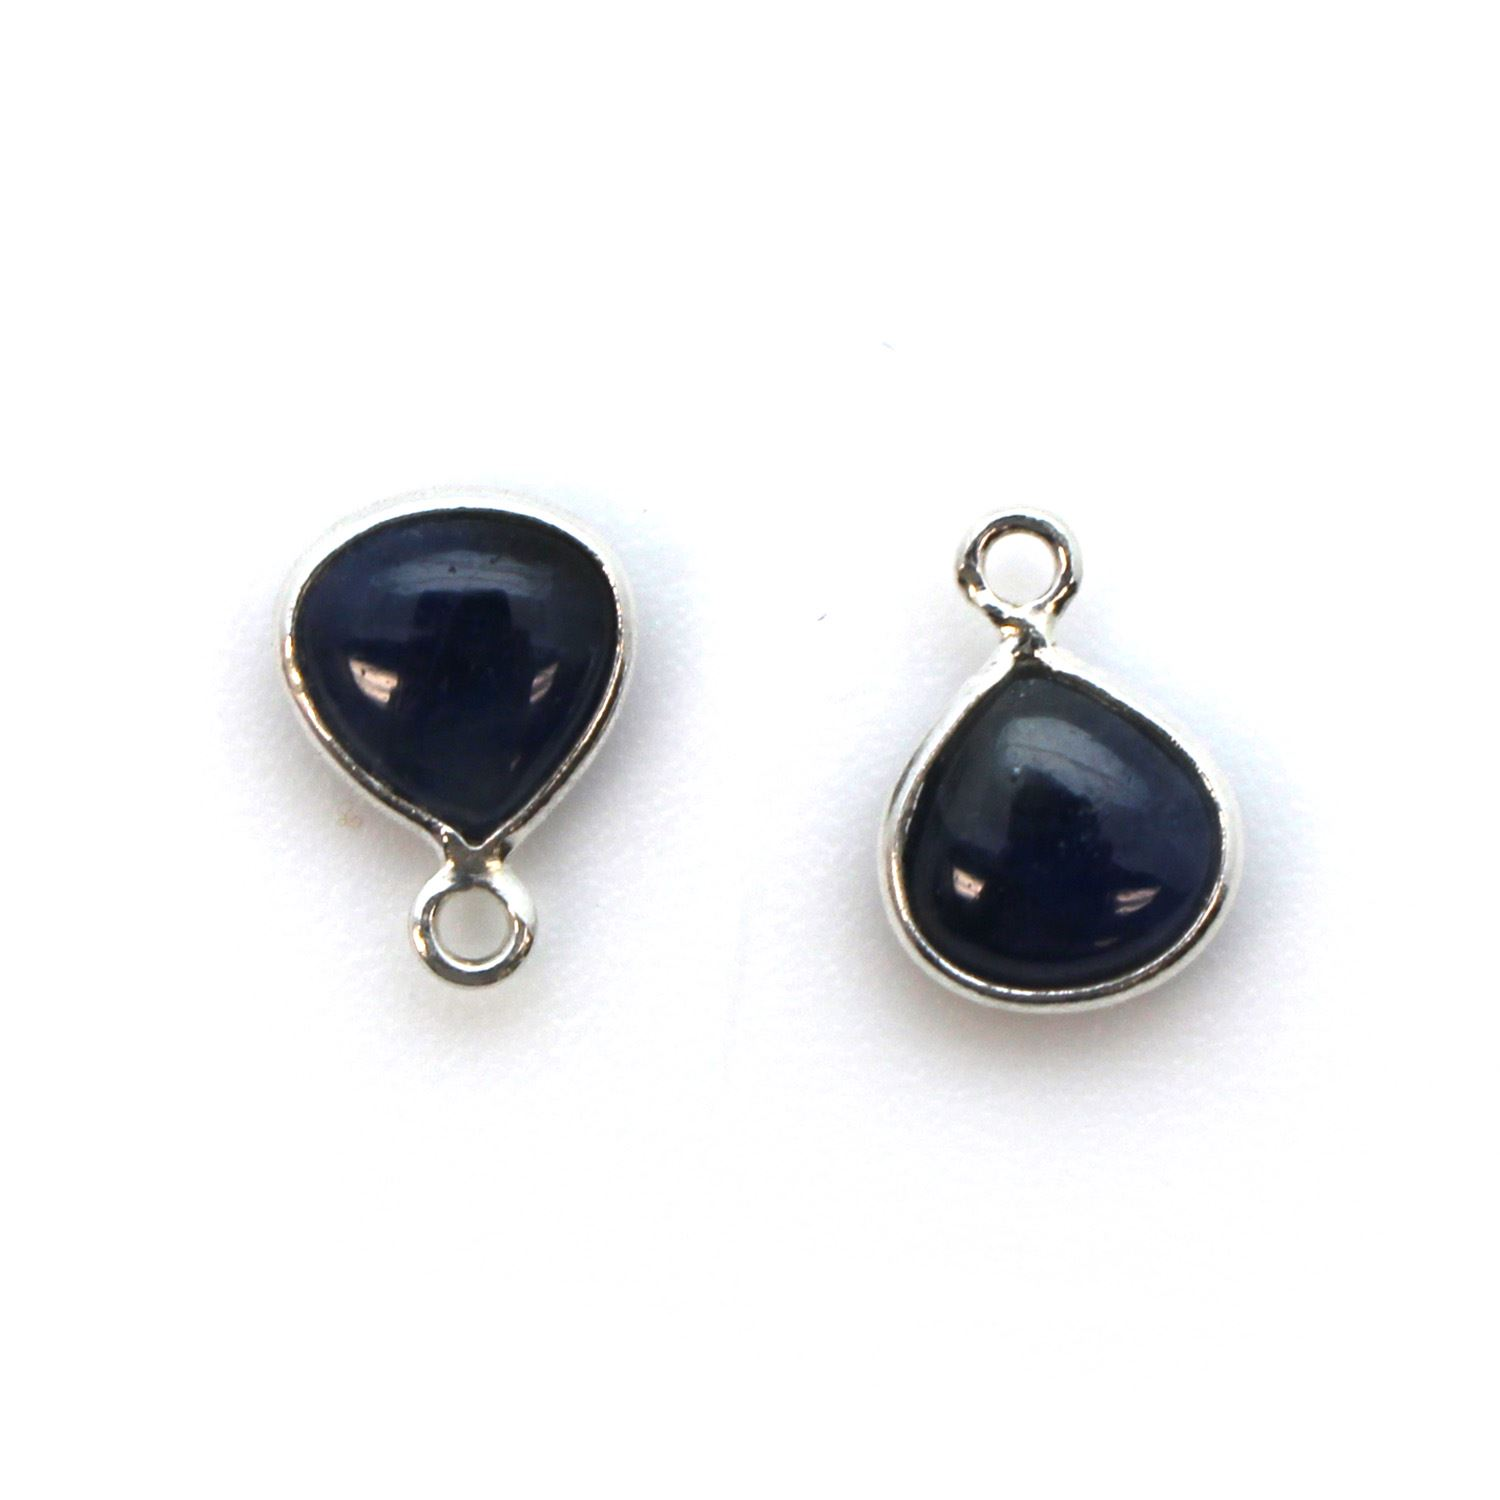 Bezel Charm Pendant - Sterling Silver Charm - Natural Blue Sapphire - Tiny Heart Shape -7mm